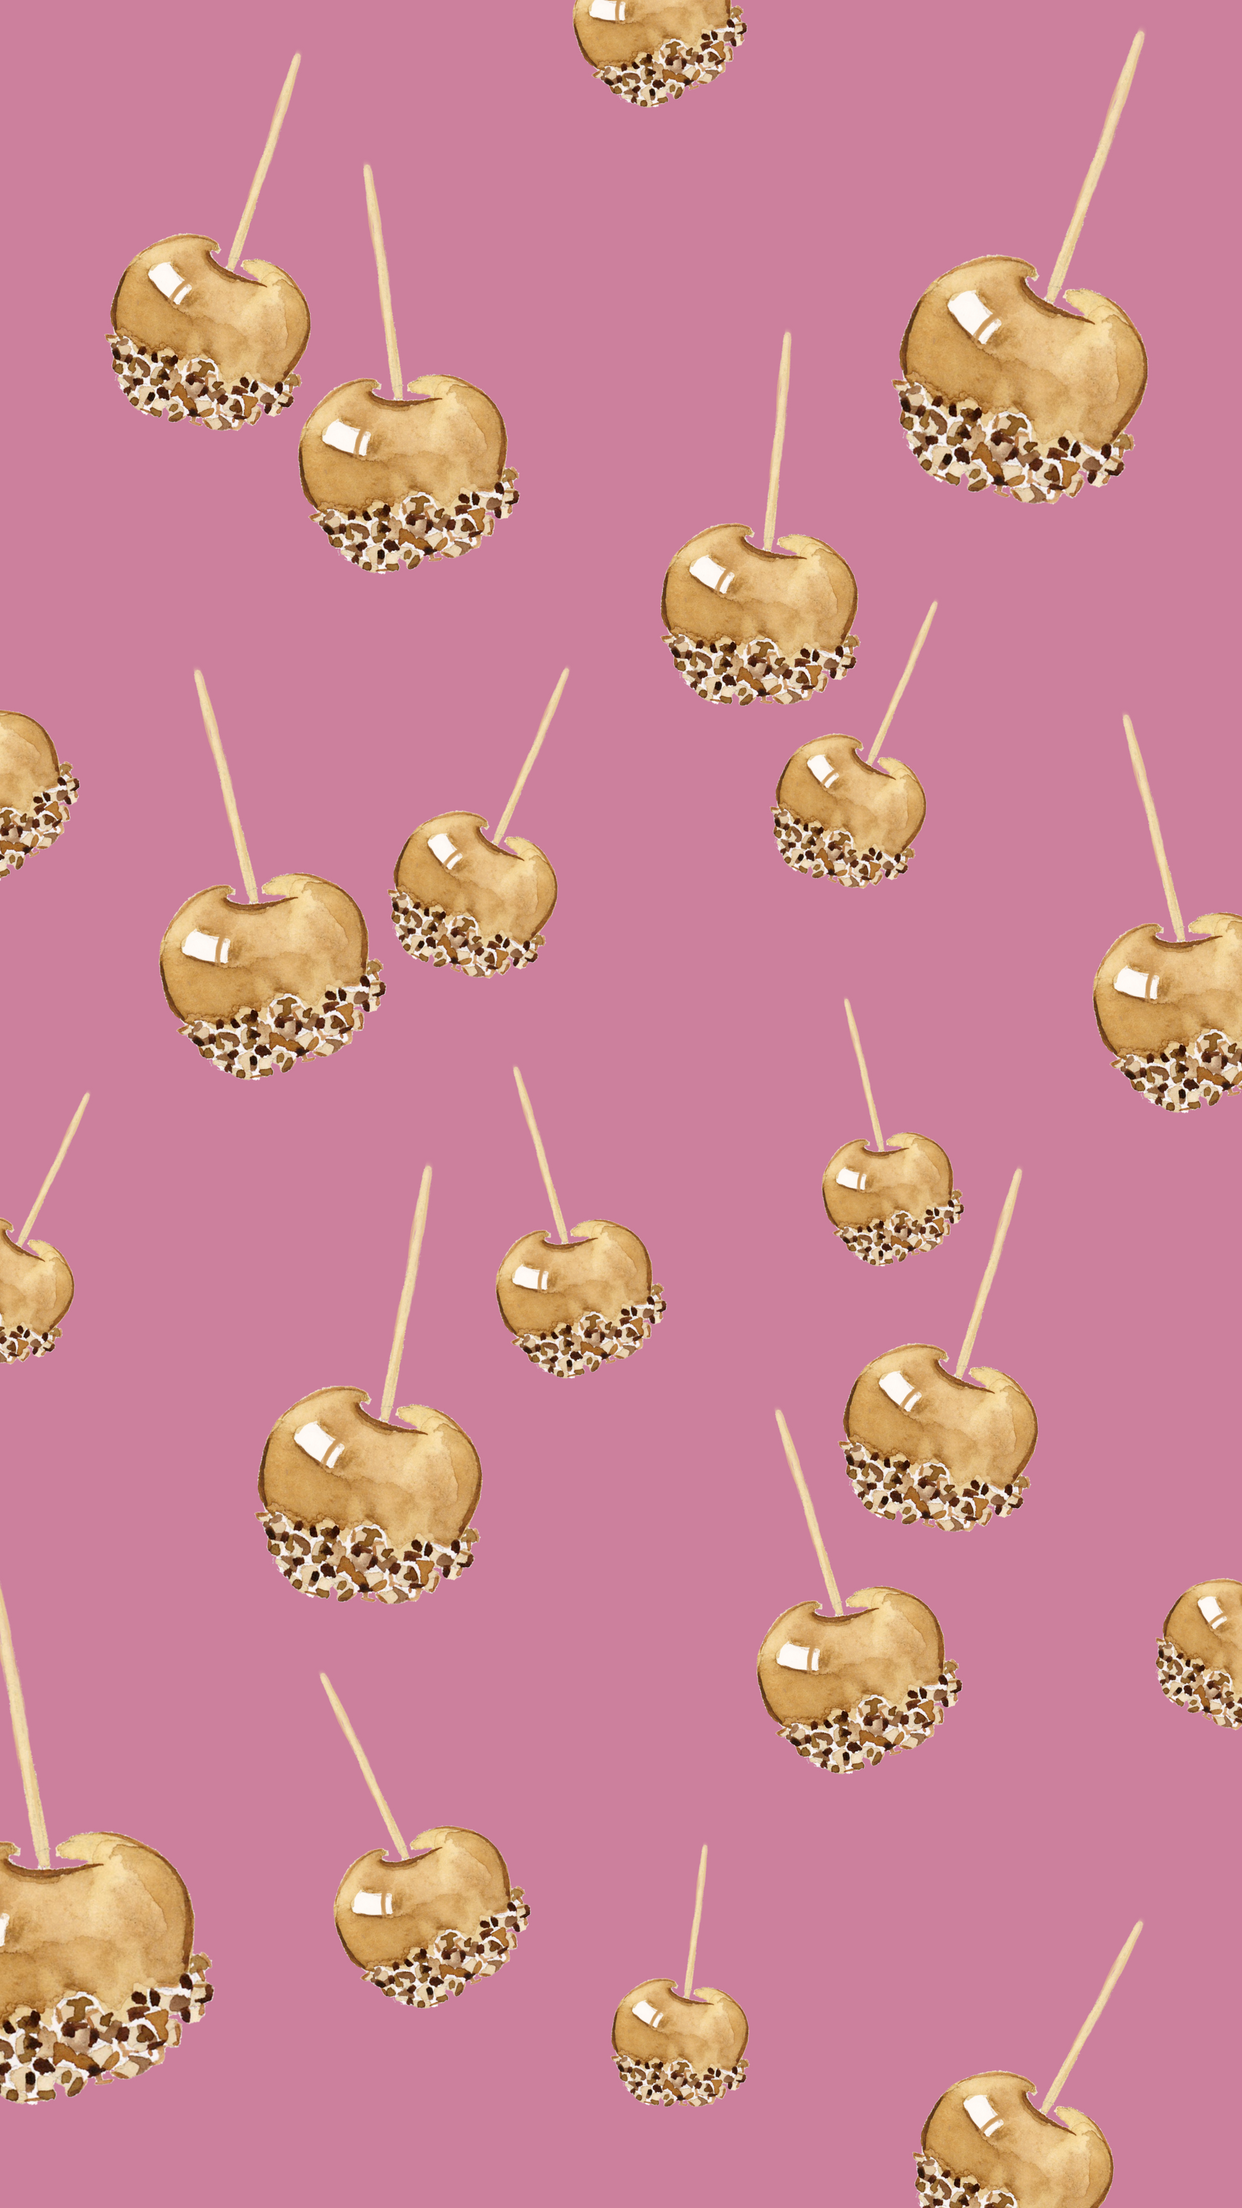 Cute-Fall-Cell-Phone-Wallpapers-Backgrounds-Caramel-Apples.jpg